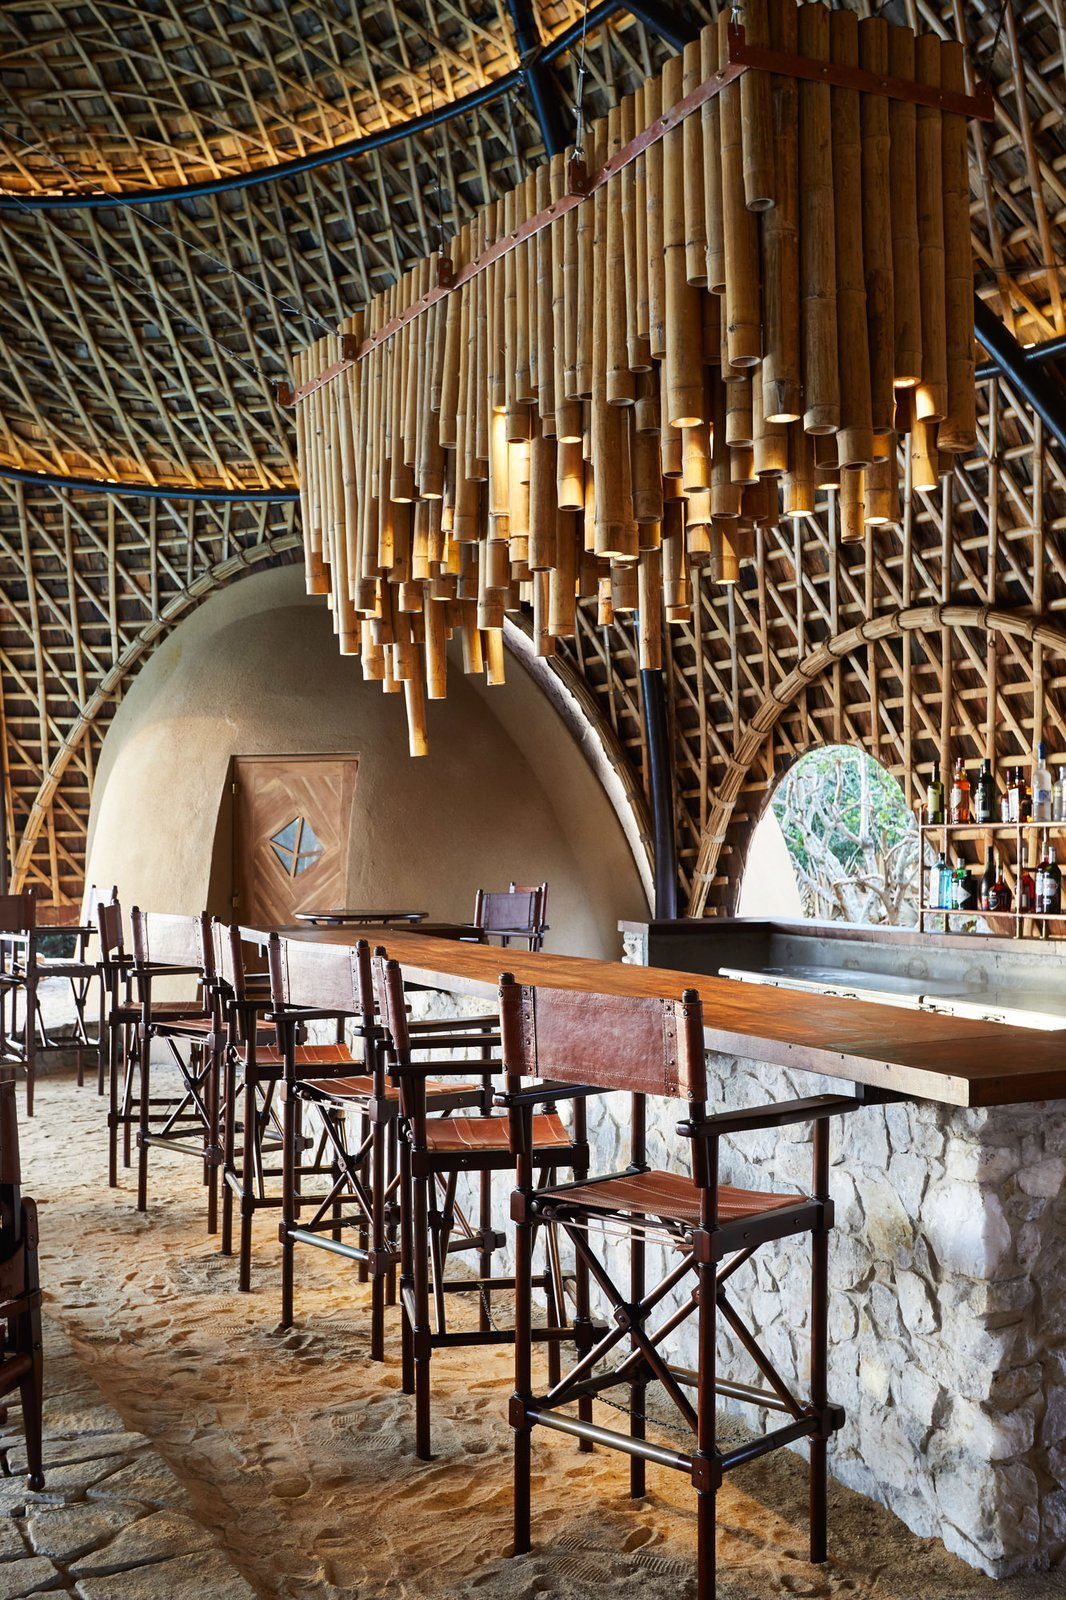 Dining Room, Bar, Stools, and Pendant Lighting Rates start from $924 per room per night on an all-inclusive basis based on two people. There's a two-night minimum stay.  Wild Coast Tented Lodge from Stay in a Cocoon-Like Tent at a Safari Resort in Sri Lanka